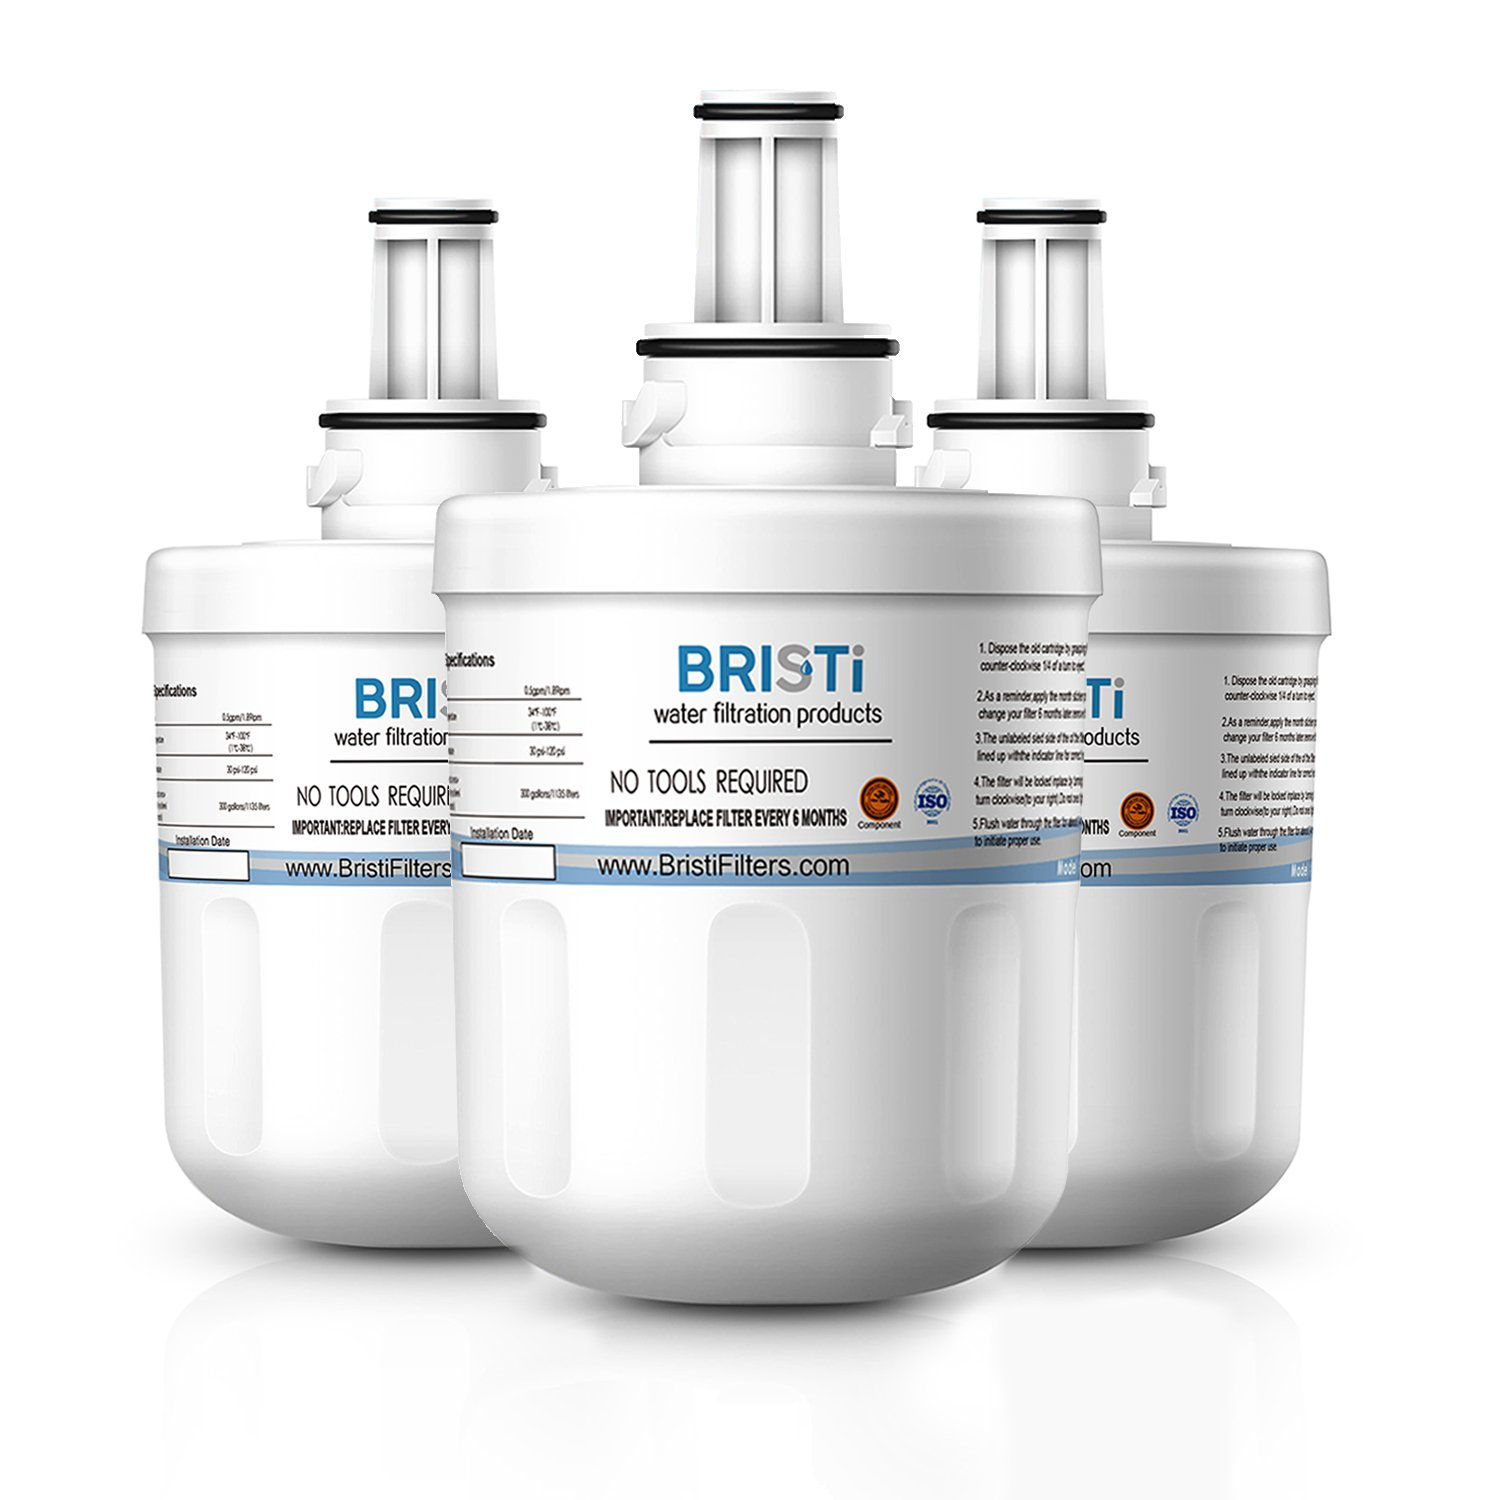 Bristi Samsung DA29-00003G Refrigerator Water Filter Replacement And Fits DA29-00003B, DA29-00003A, HAFCU1 (3 Pack)